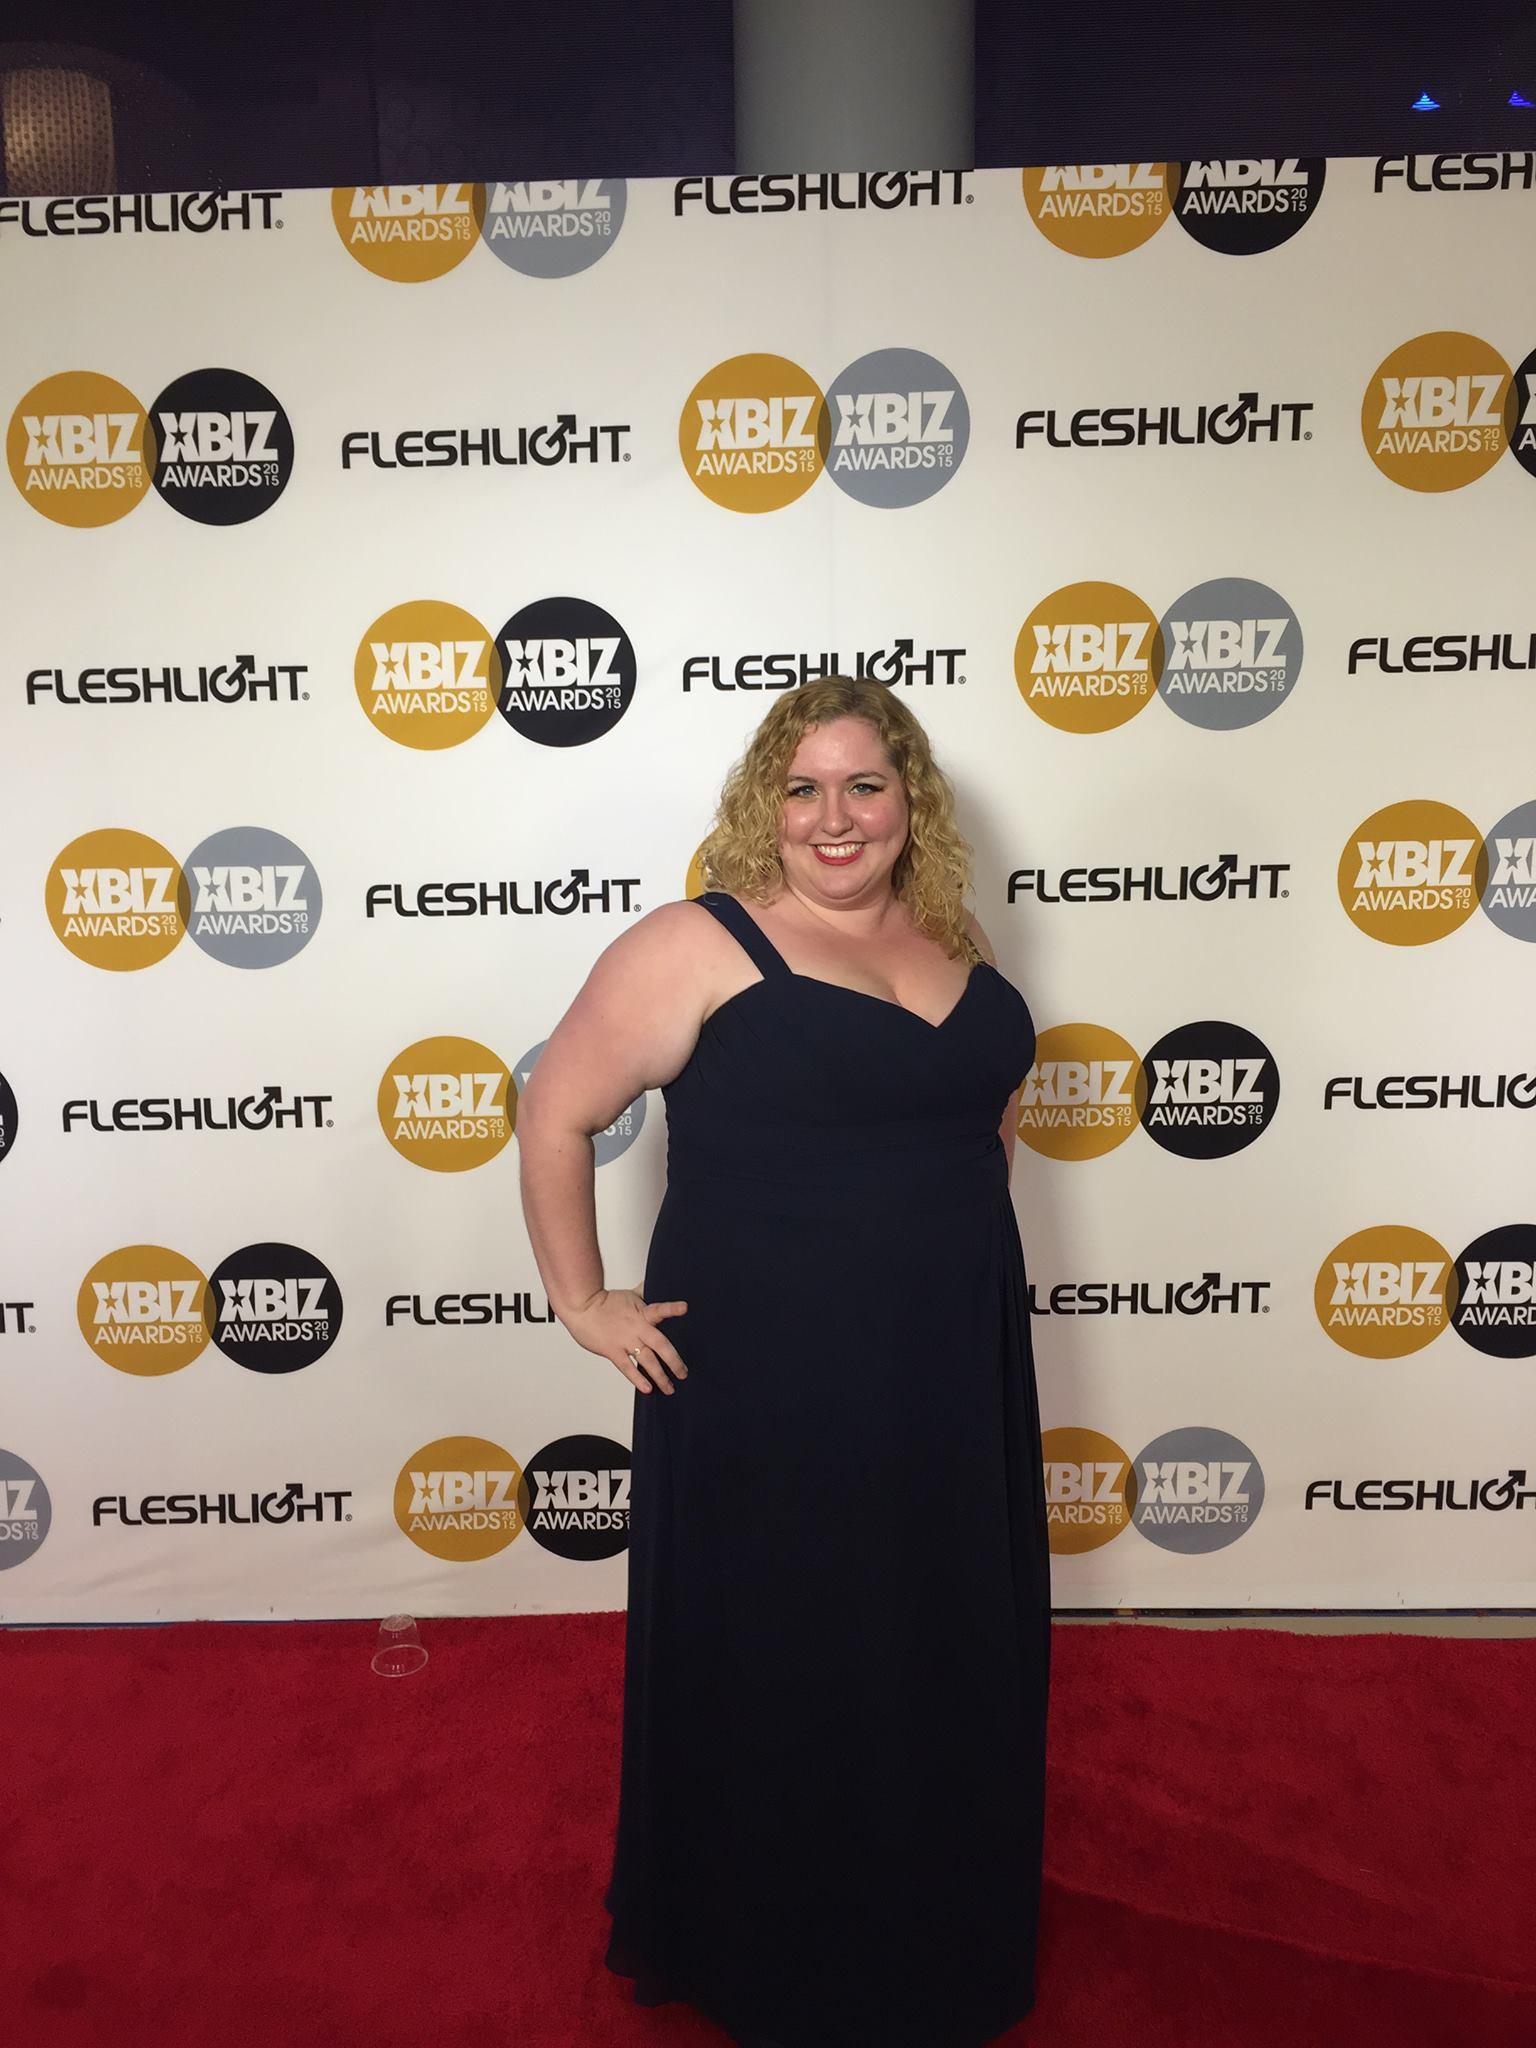 ashley_xbiz_awards.jpg